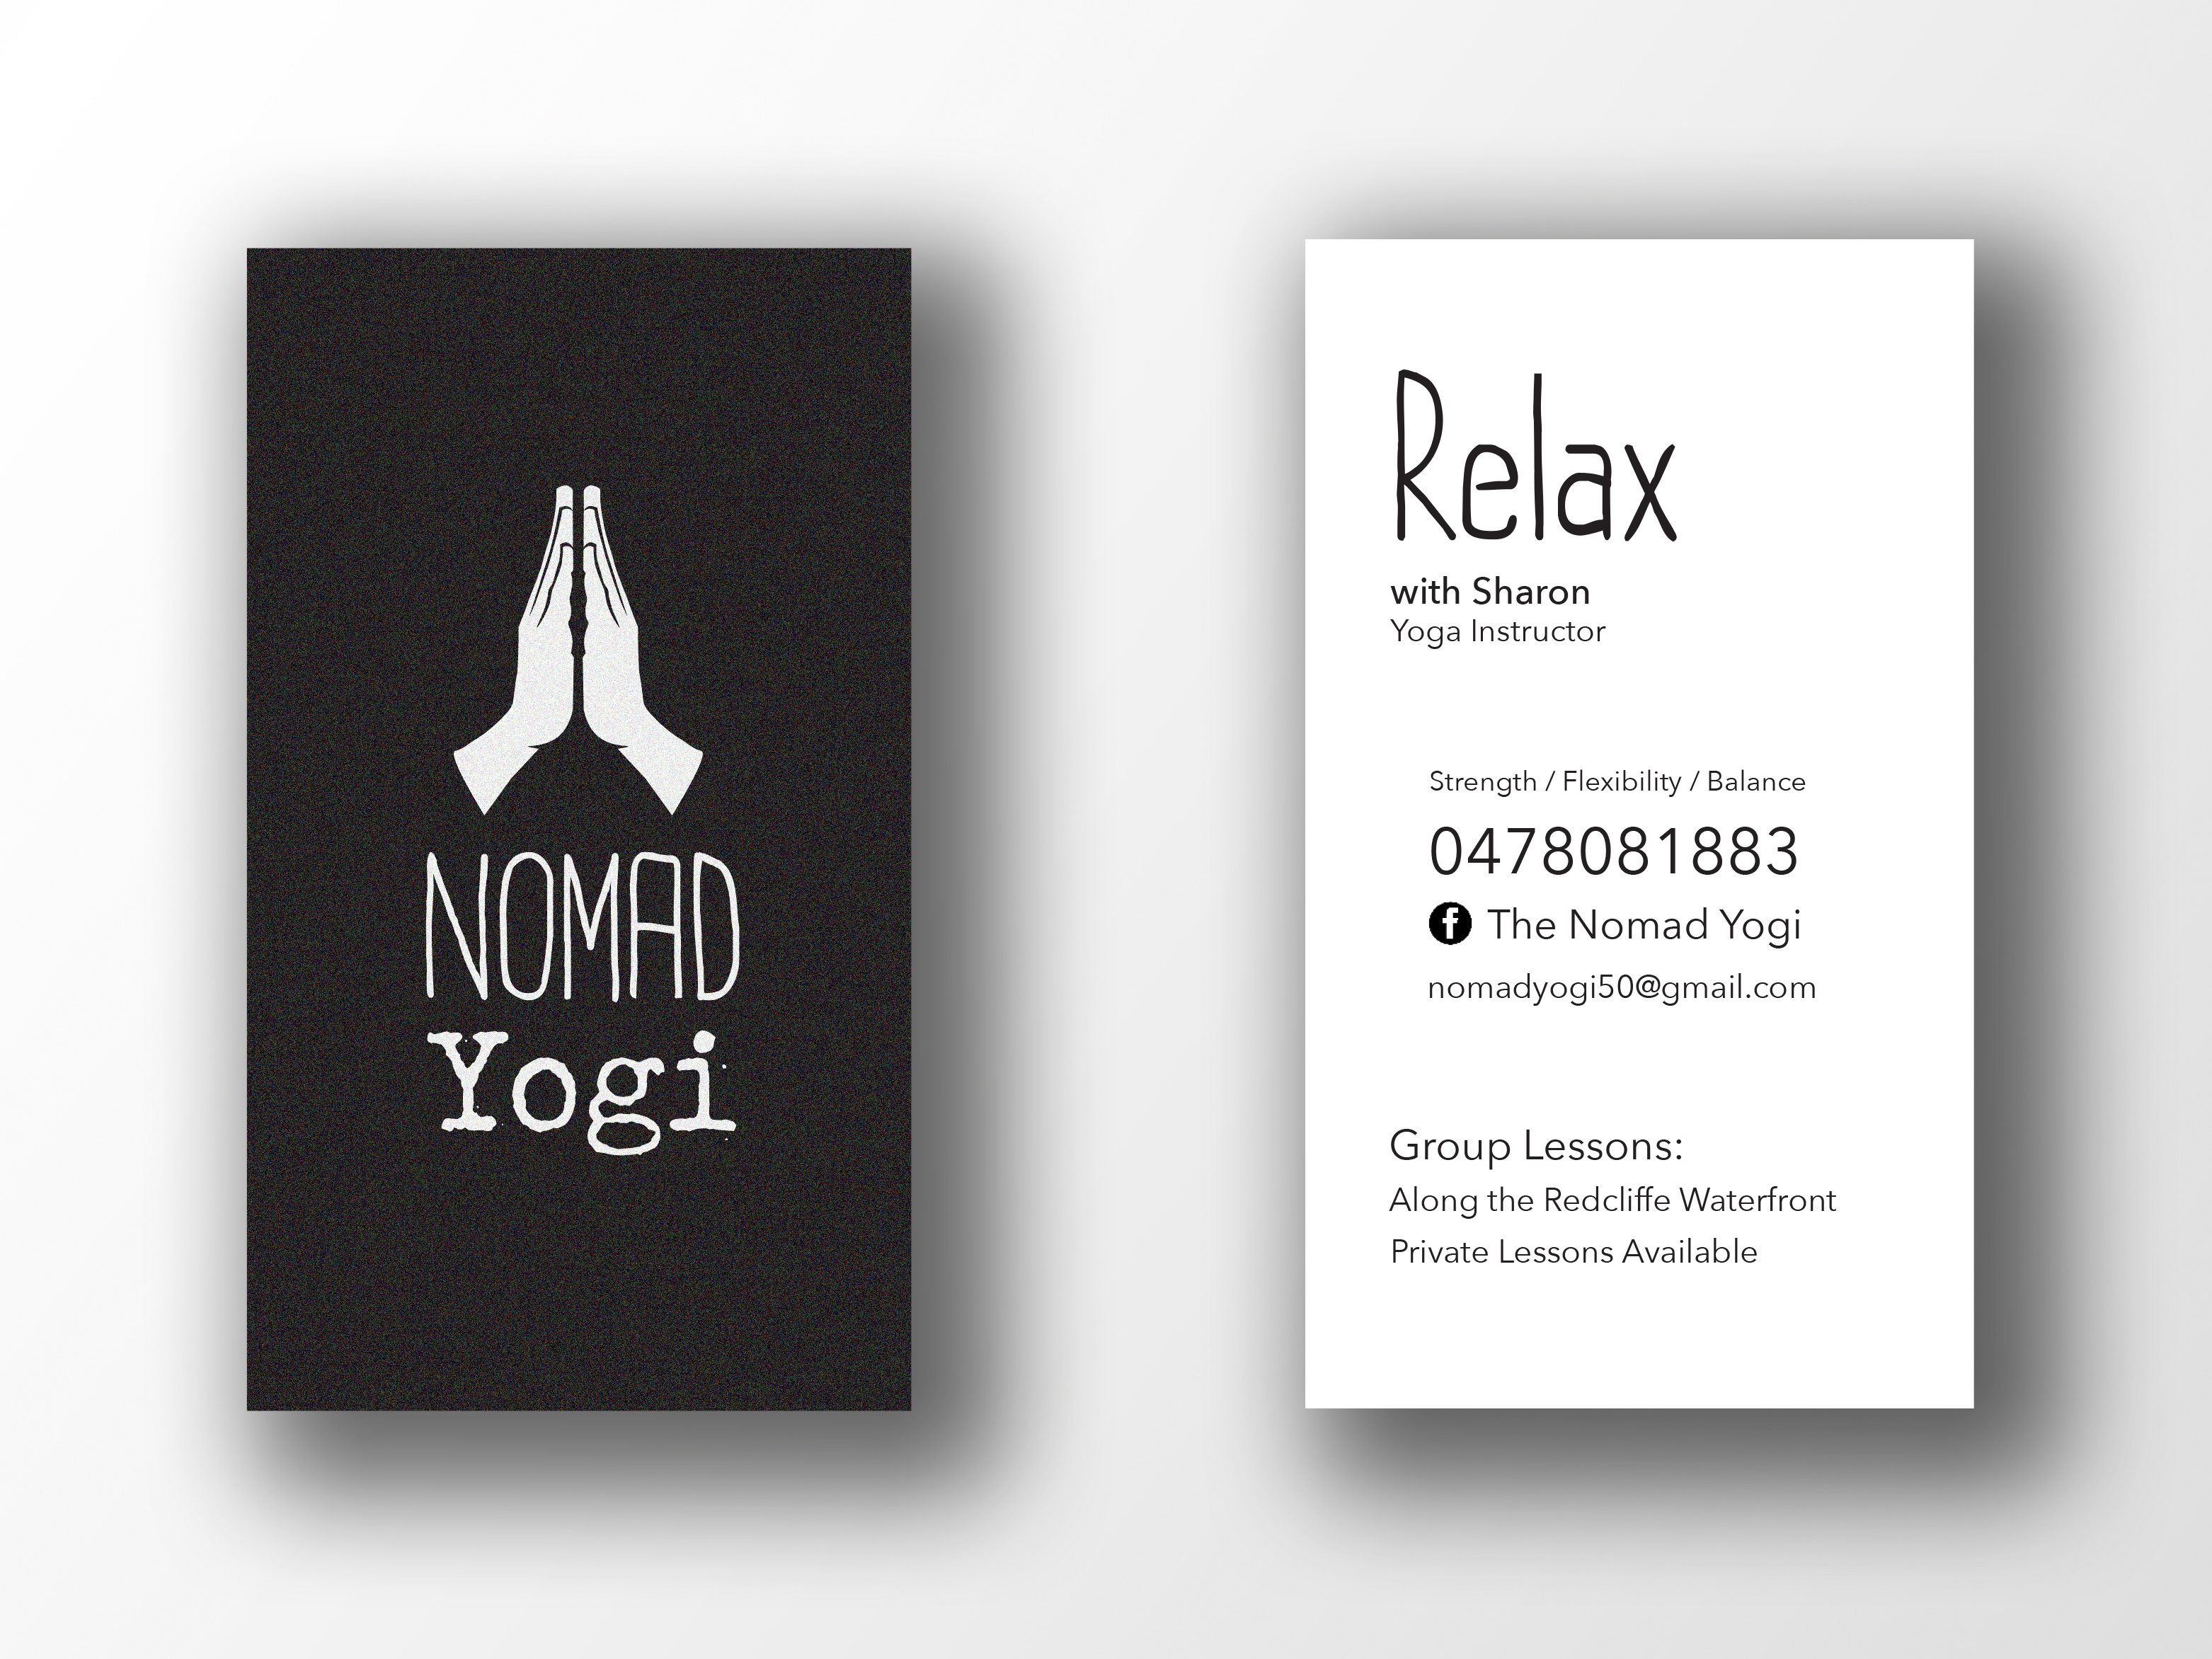 Buisness card mockup